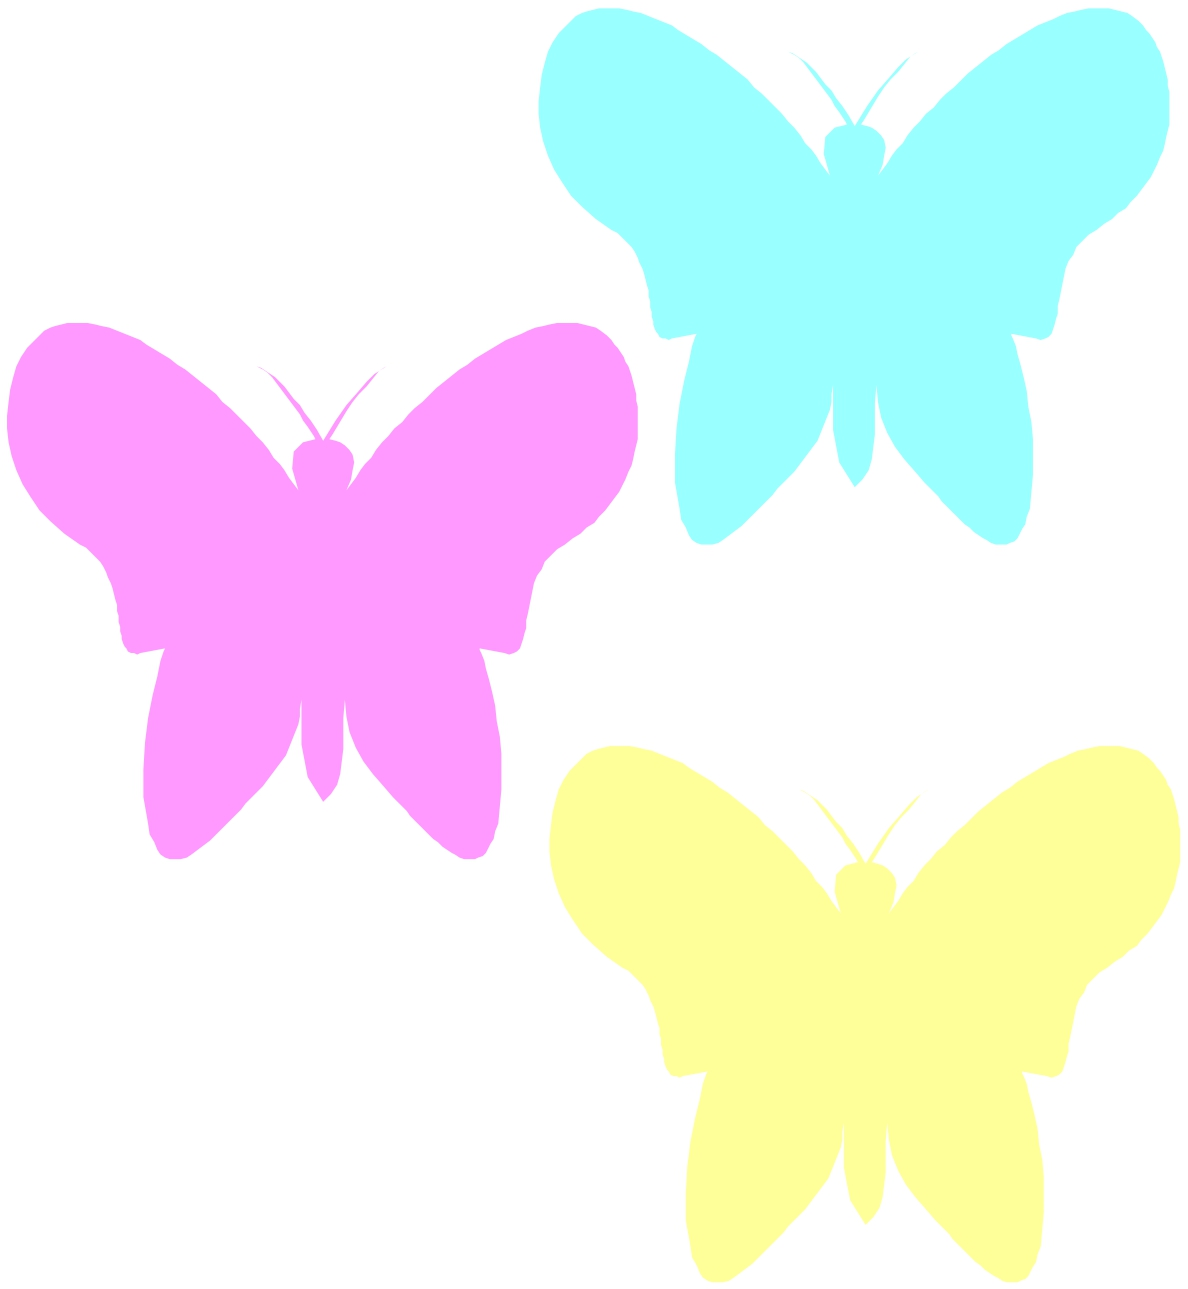 Pastel butterfly clipart jpg transparent stock Pastel butterfly clipart - ClipartFest jpg transparent stock